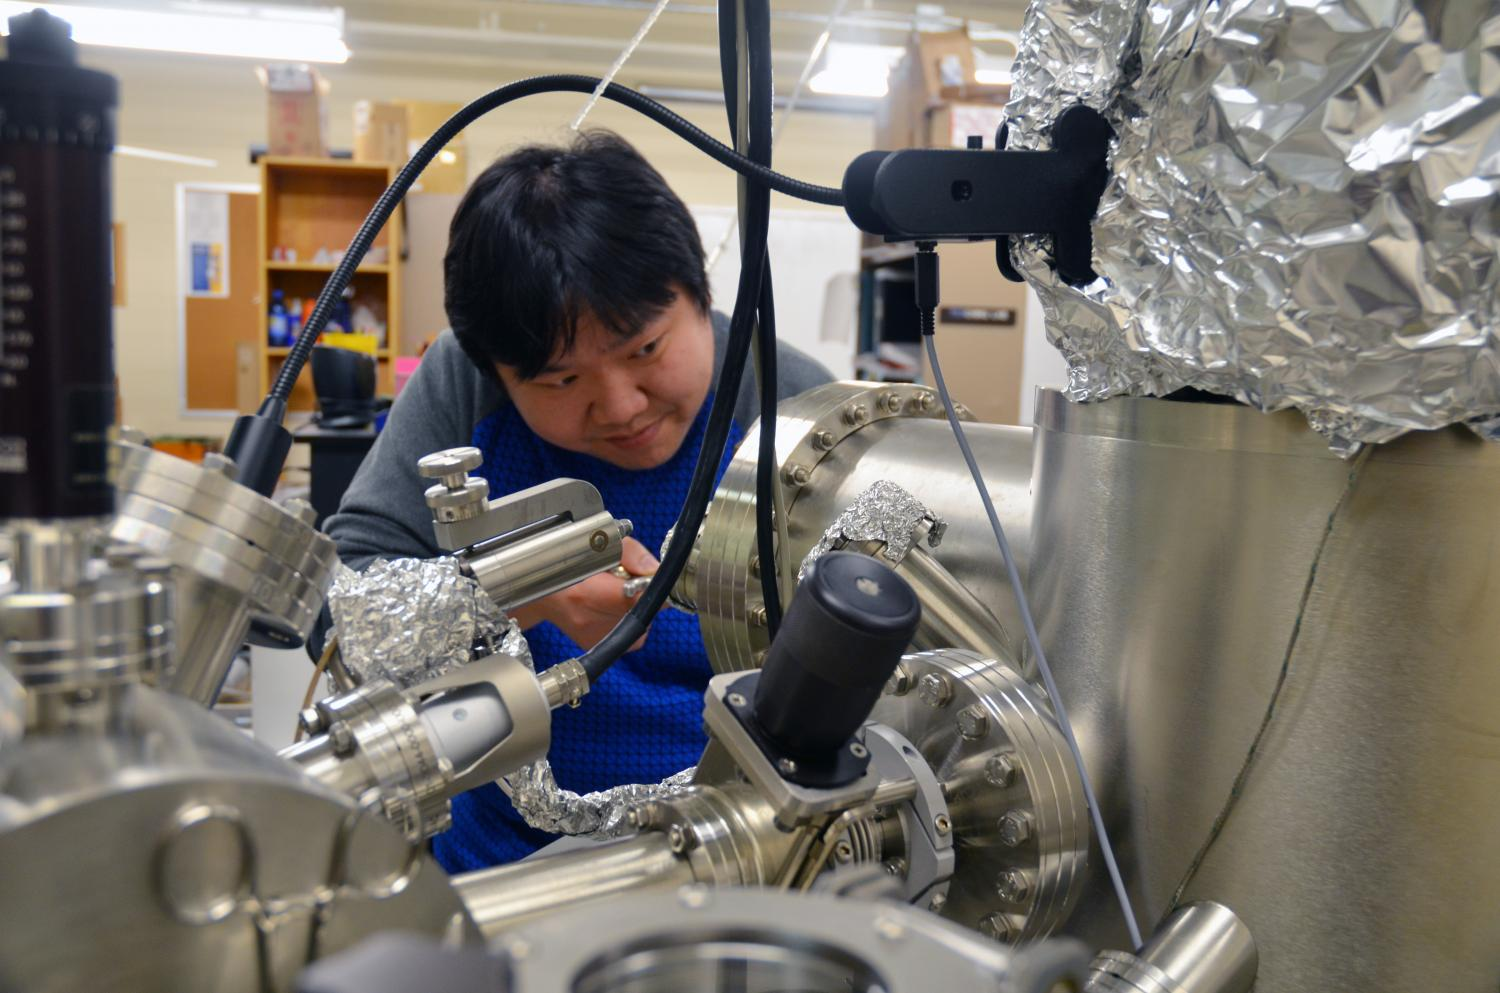 Mechanical properties of nanomaterials are altered due to ...